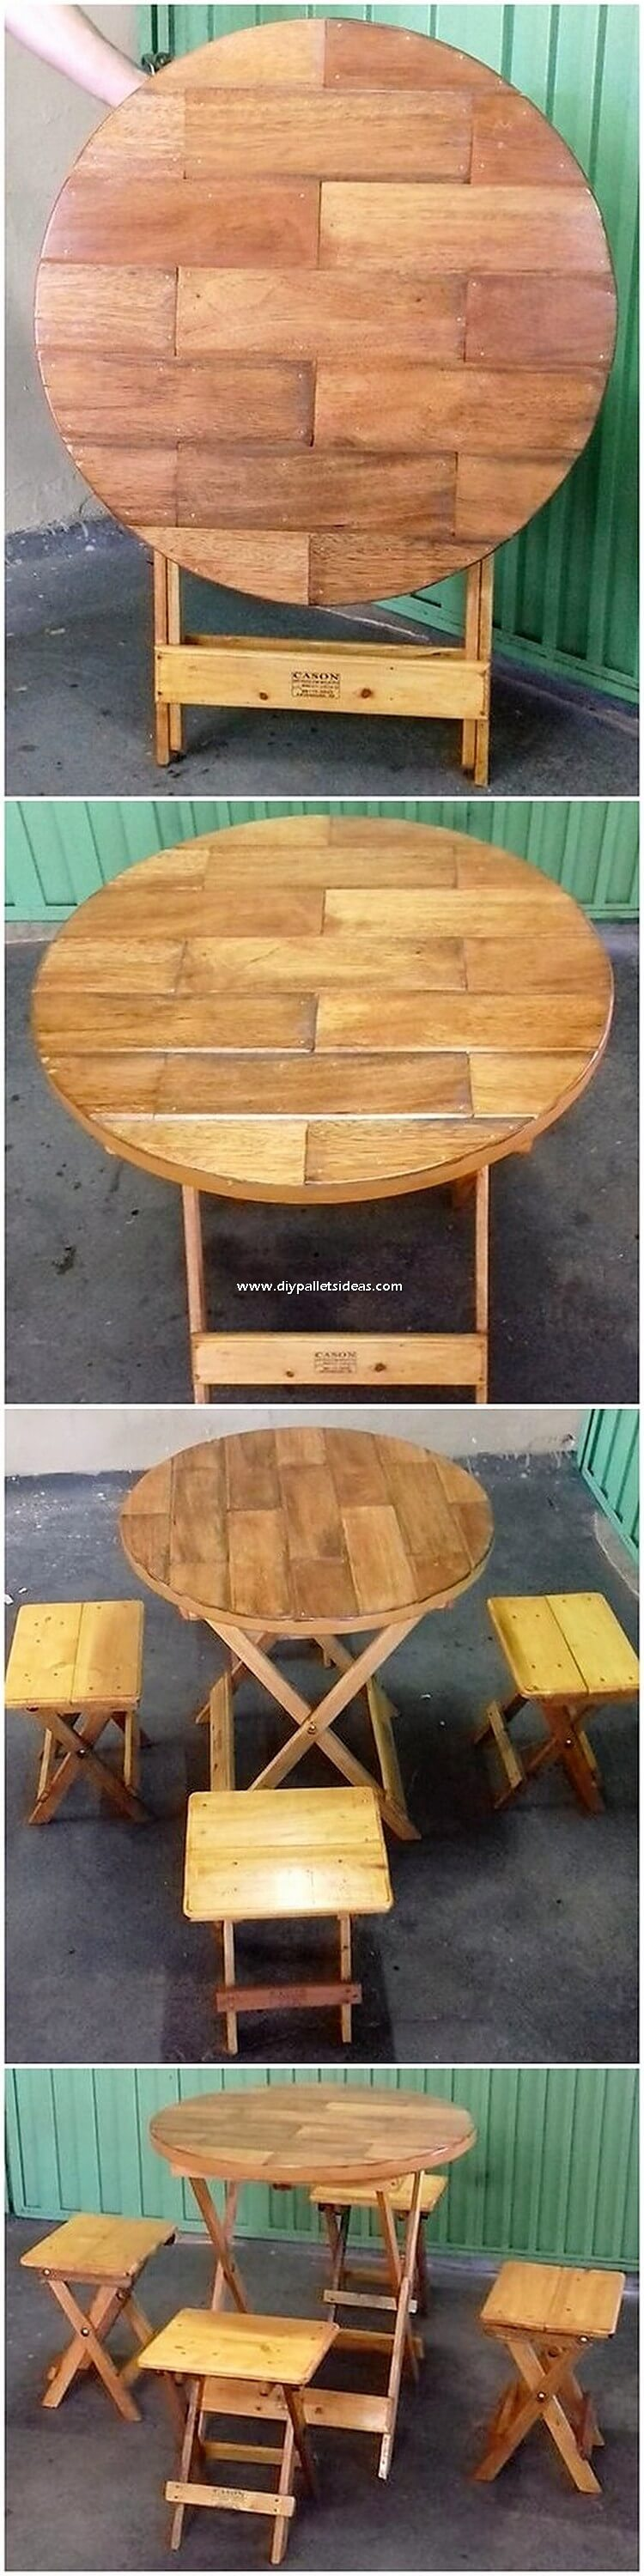 Pallet Folding Table and Stools